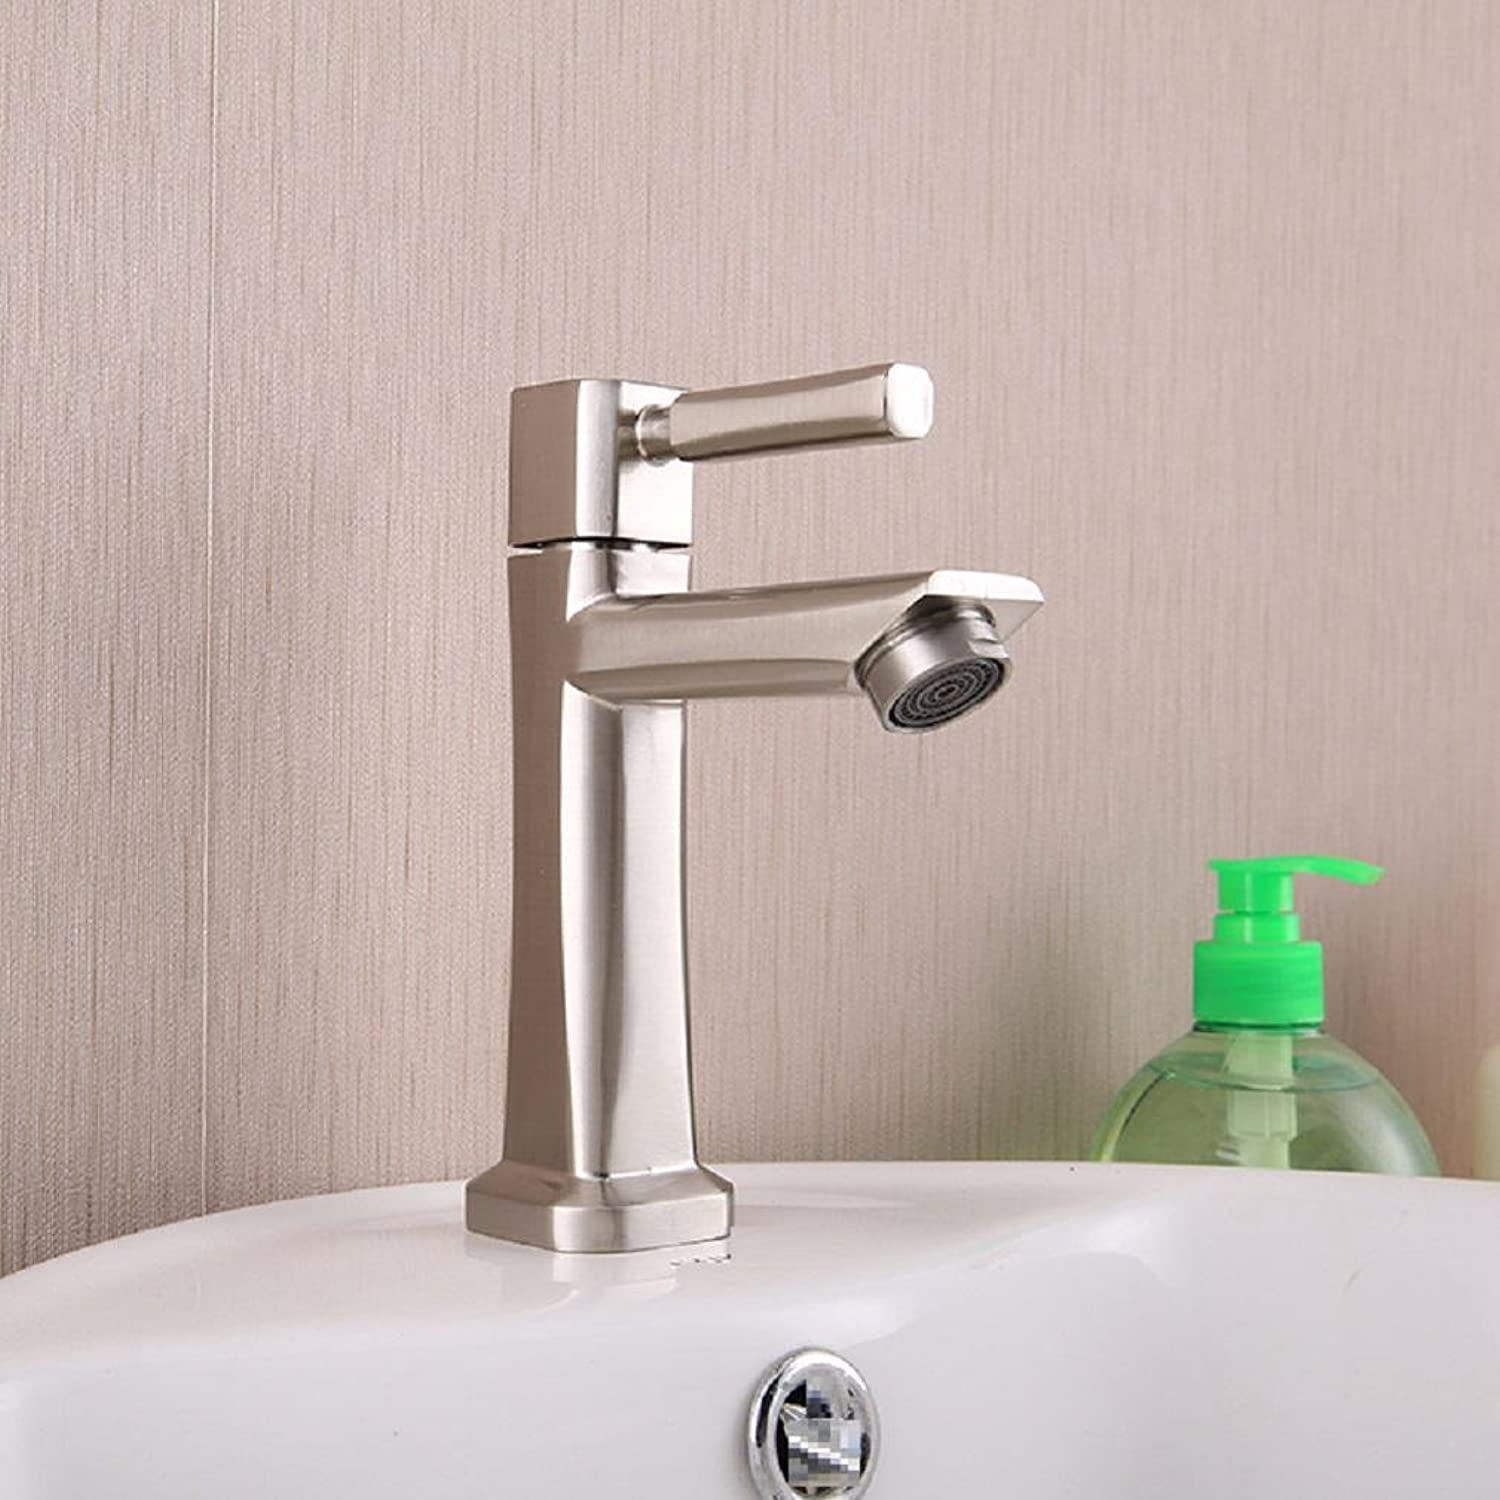 AMZH Hot And Cold Taps Stainless Steel Kitchen Sink Tap Wash The Pot Mixed Water Valve Bending Faucet